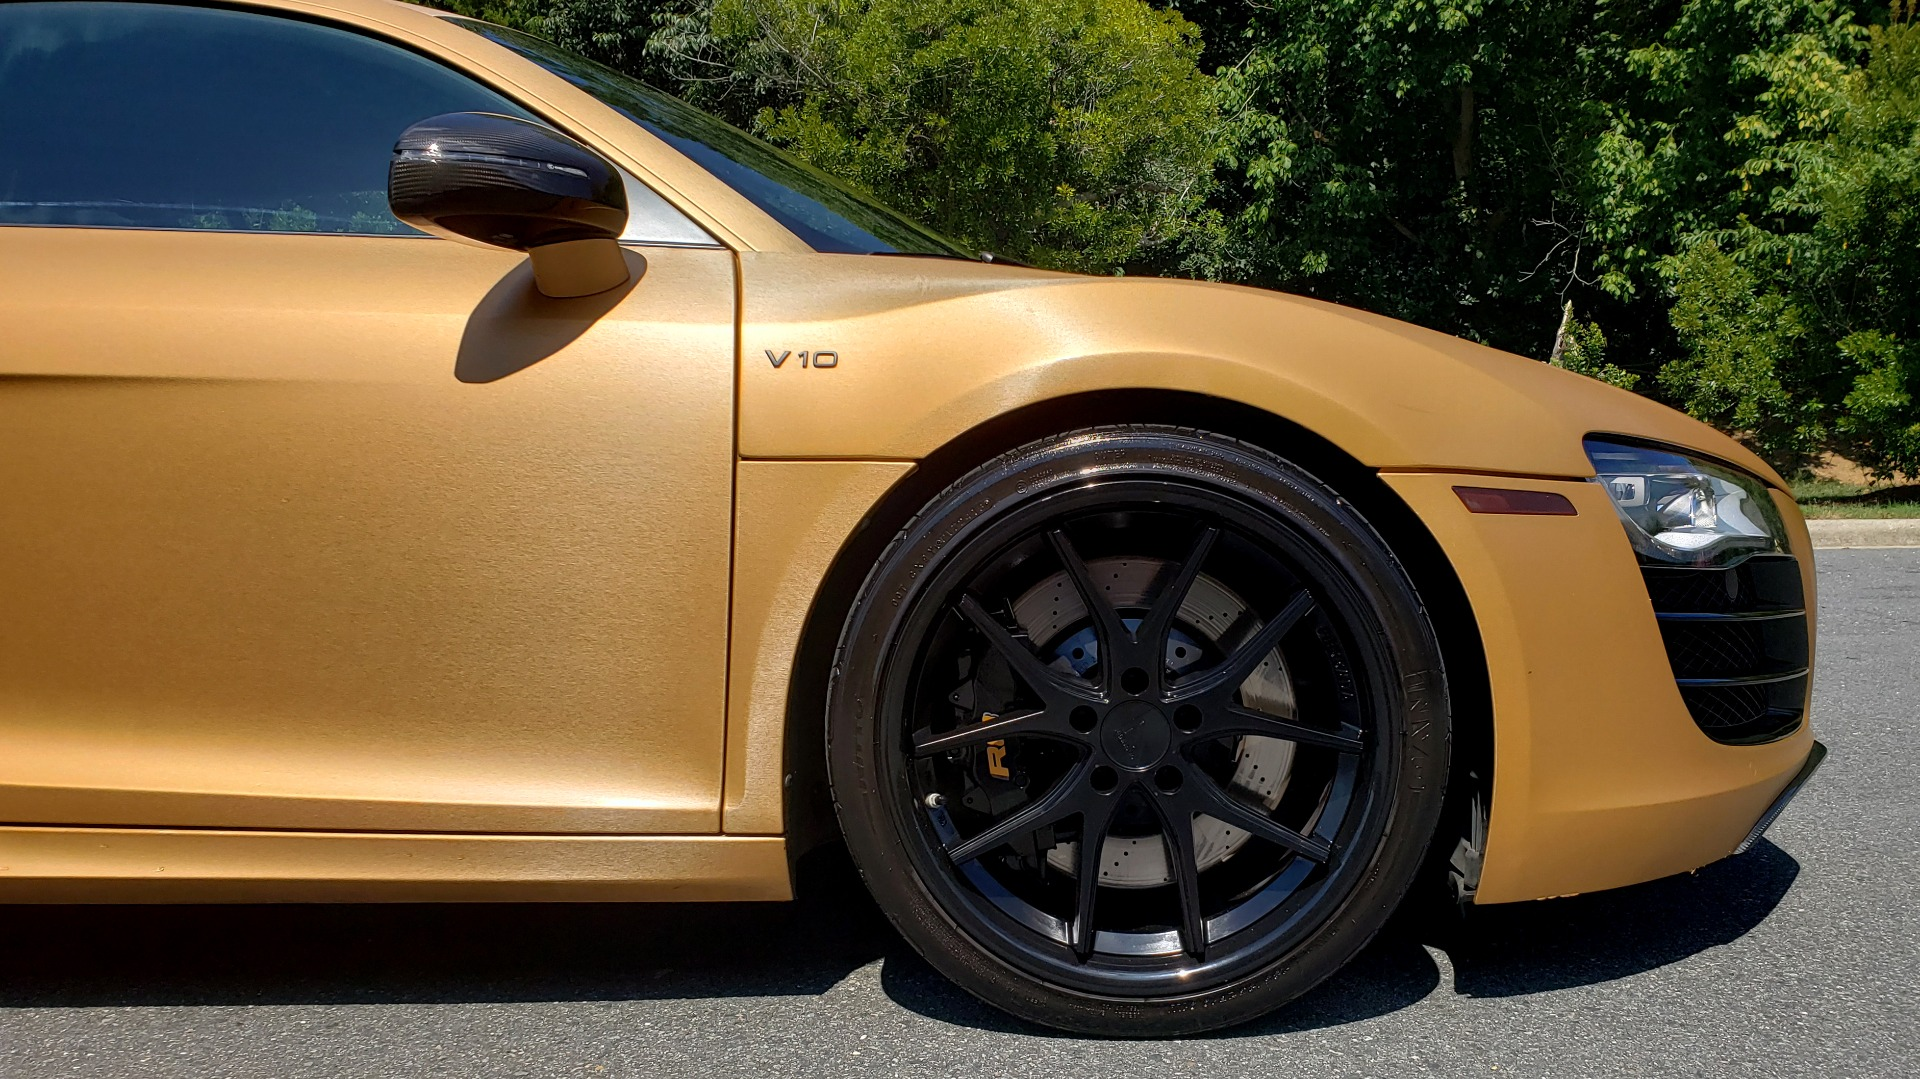 Used 2012 Audi R8 V10 5.2L / CUST WRAP BRUSHED BRONZE / NAV / B&O SOUND / CUST 19IN WHLS for sale $79,999 at Formula Imports in Charlotte NC 28227 67